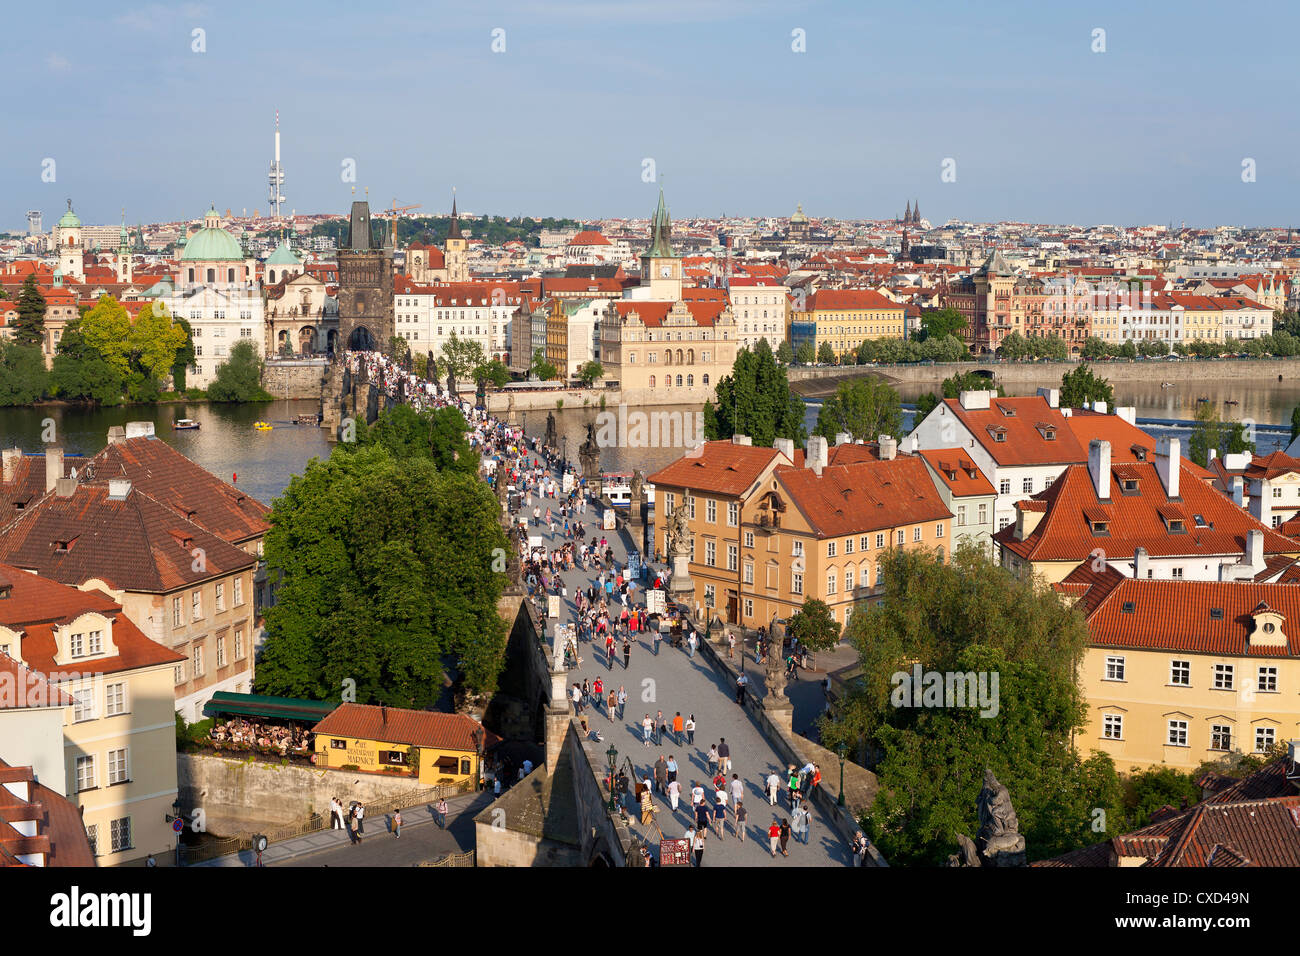 Le Pont Charles, Site du patrimoine mondial de l'UNESCO, Prague, République Tchèque, Europe Photo Stock